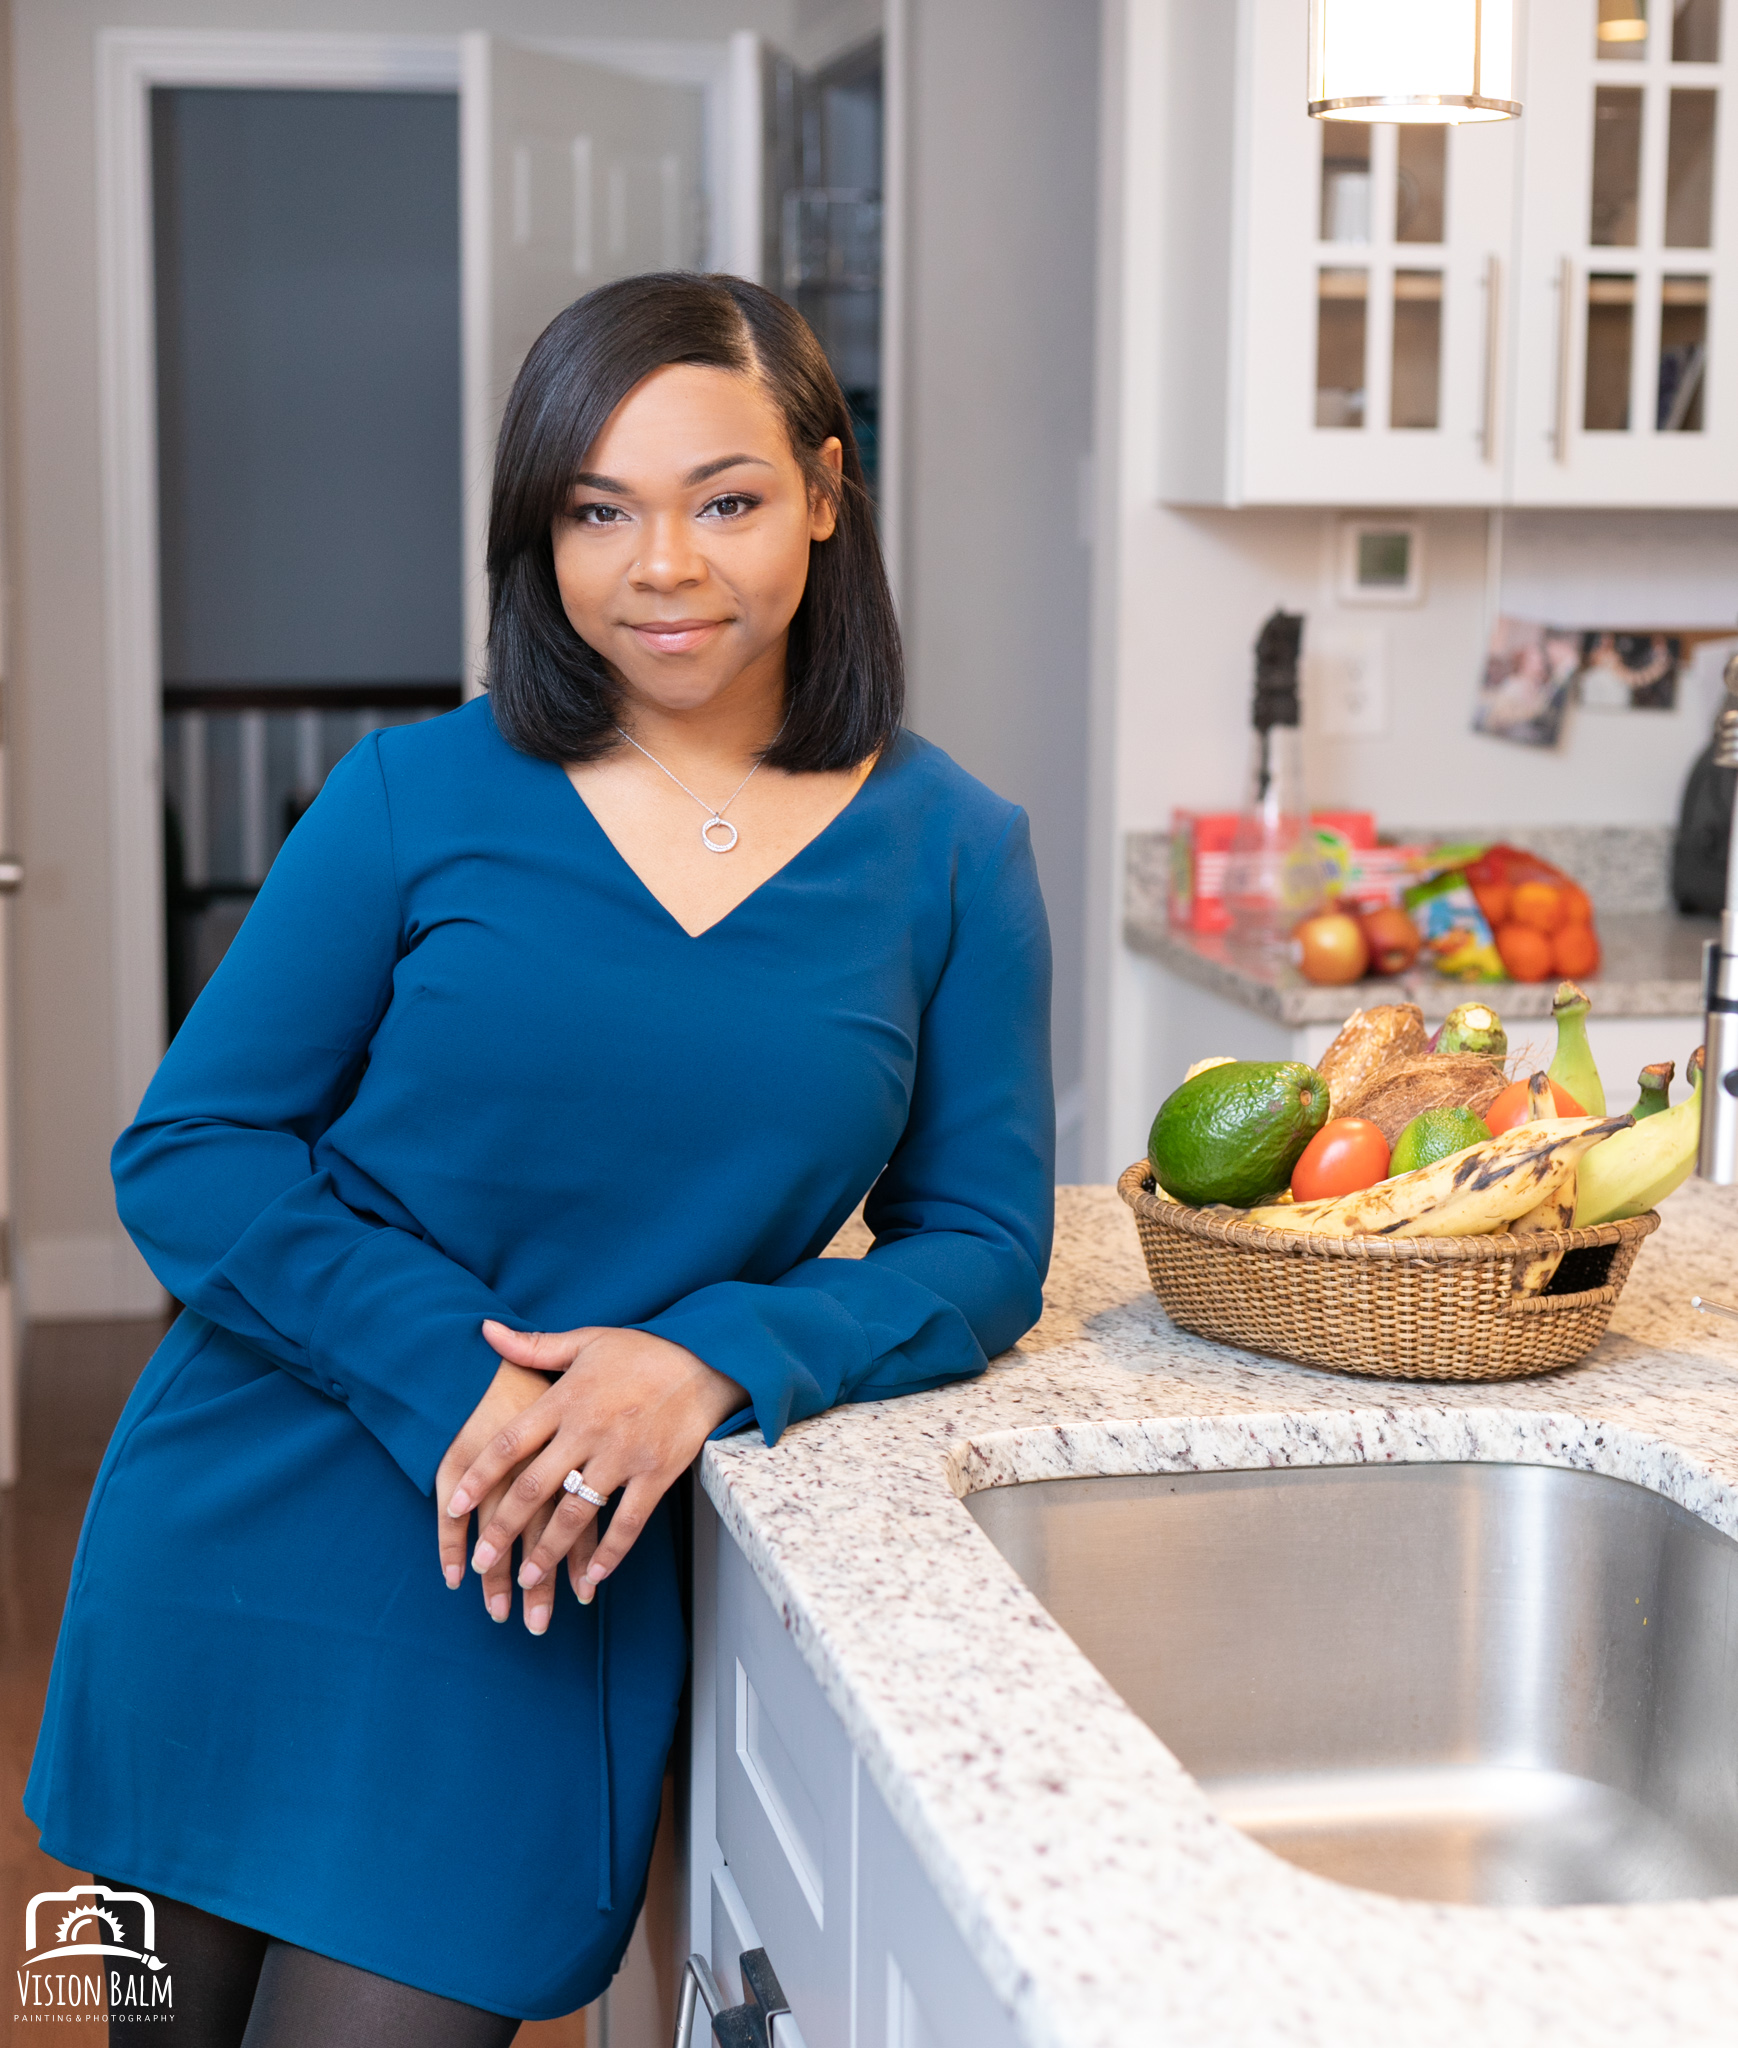 Professional portrait of a registered dietitian leaning on the counter top in the kitchen and wearing a blue dress photographed by Vision Balm in Charleston, SC.